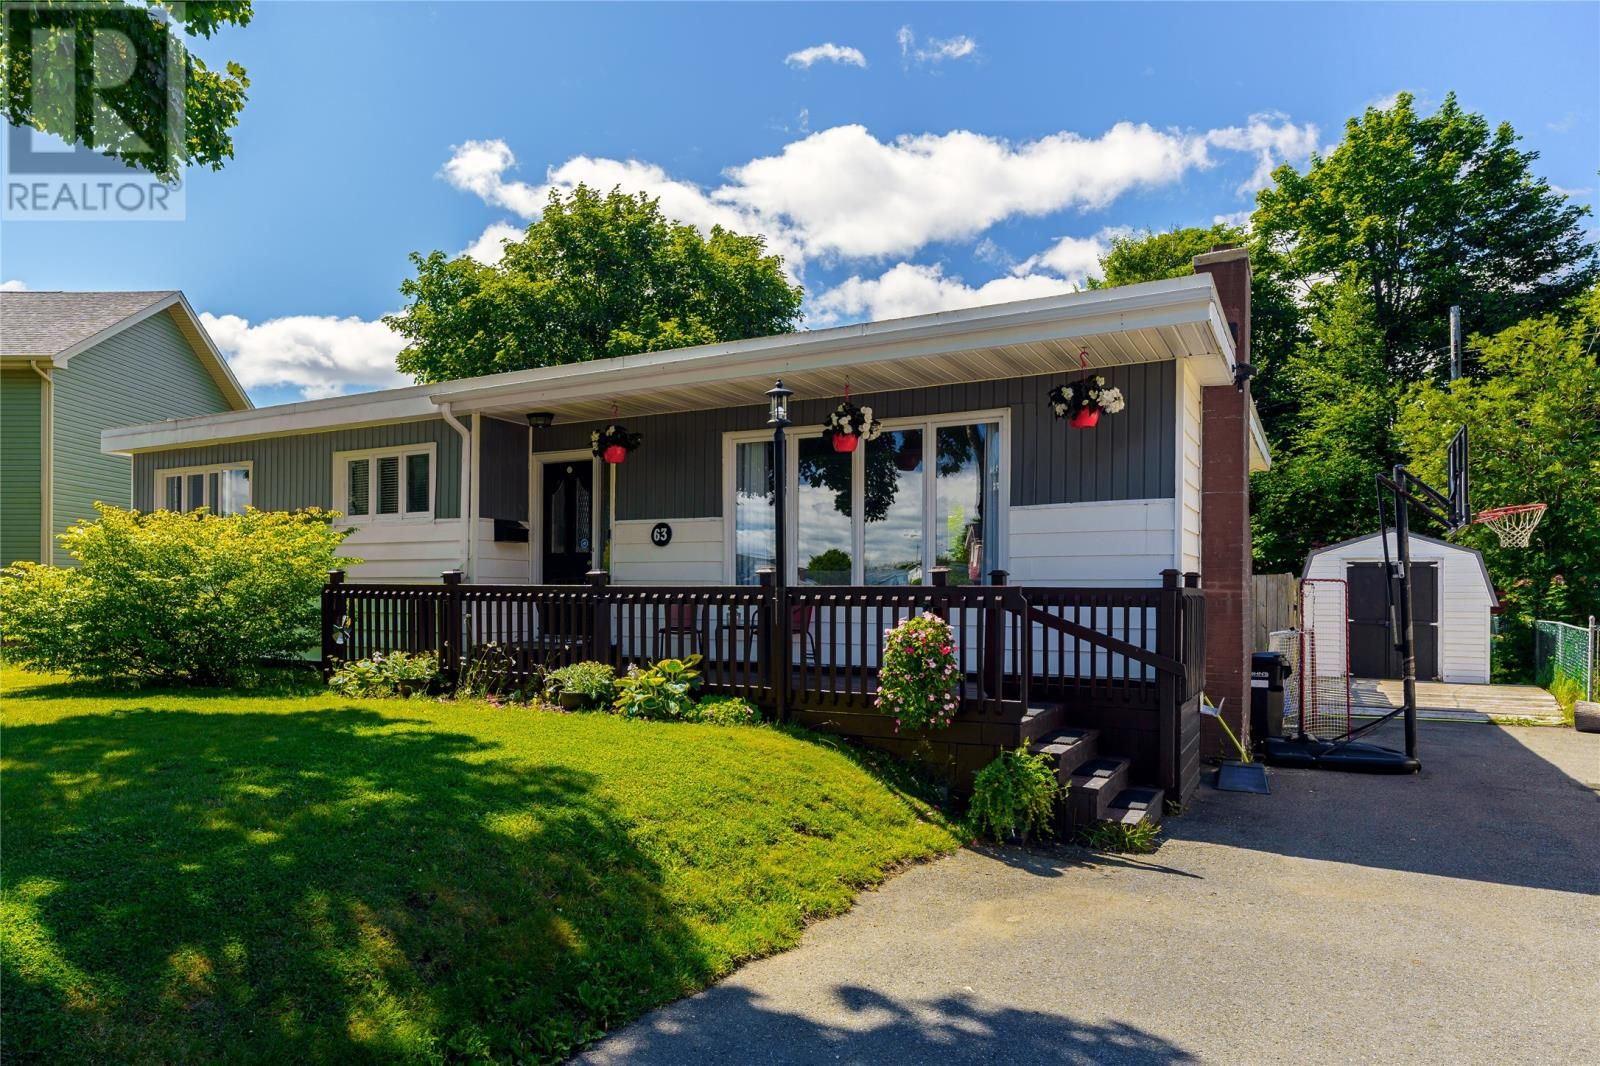 Main Photo: 63 Holbrook Avenue in St.John's: House for sale : MLS®# 1234460